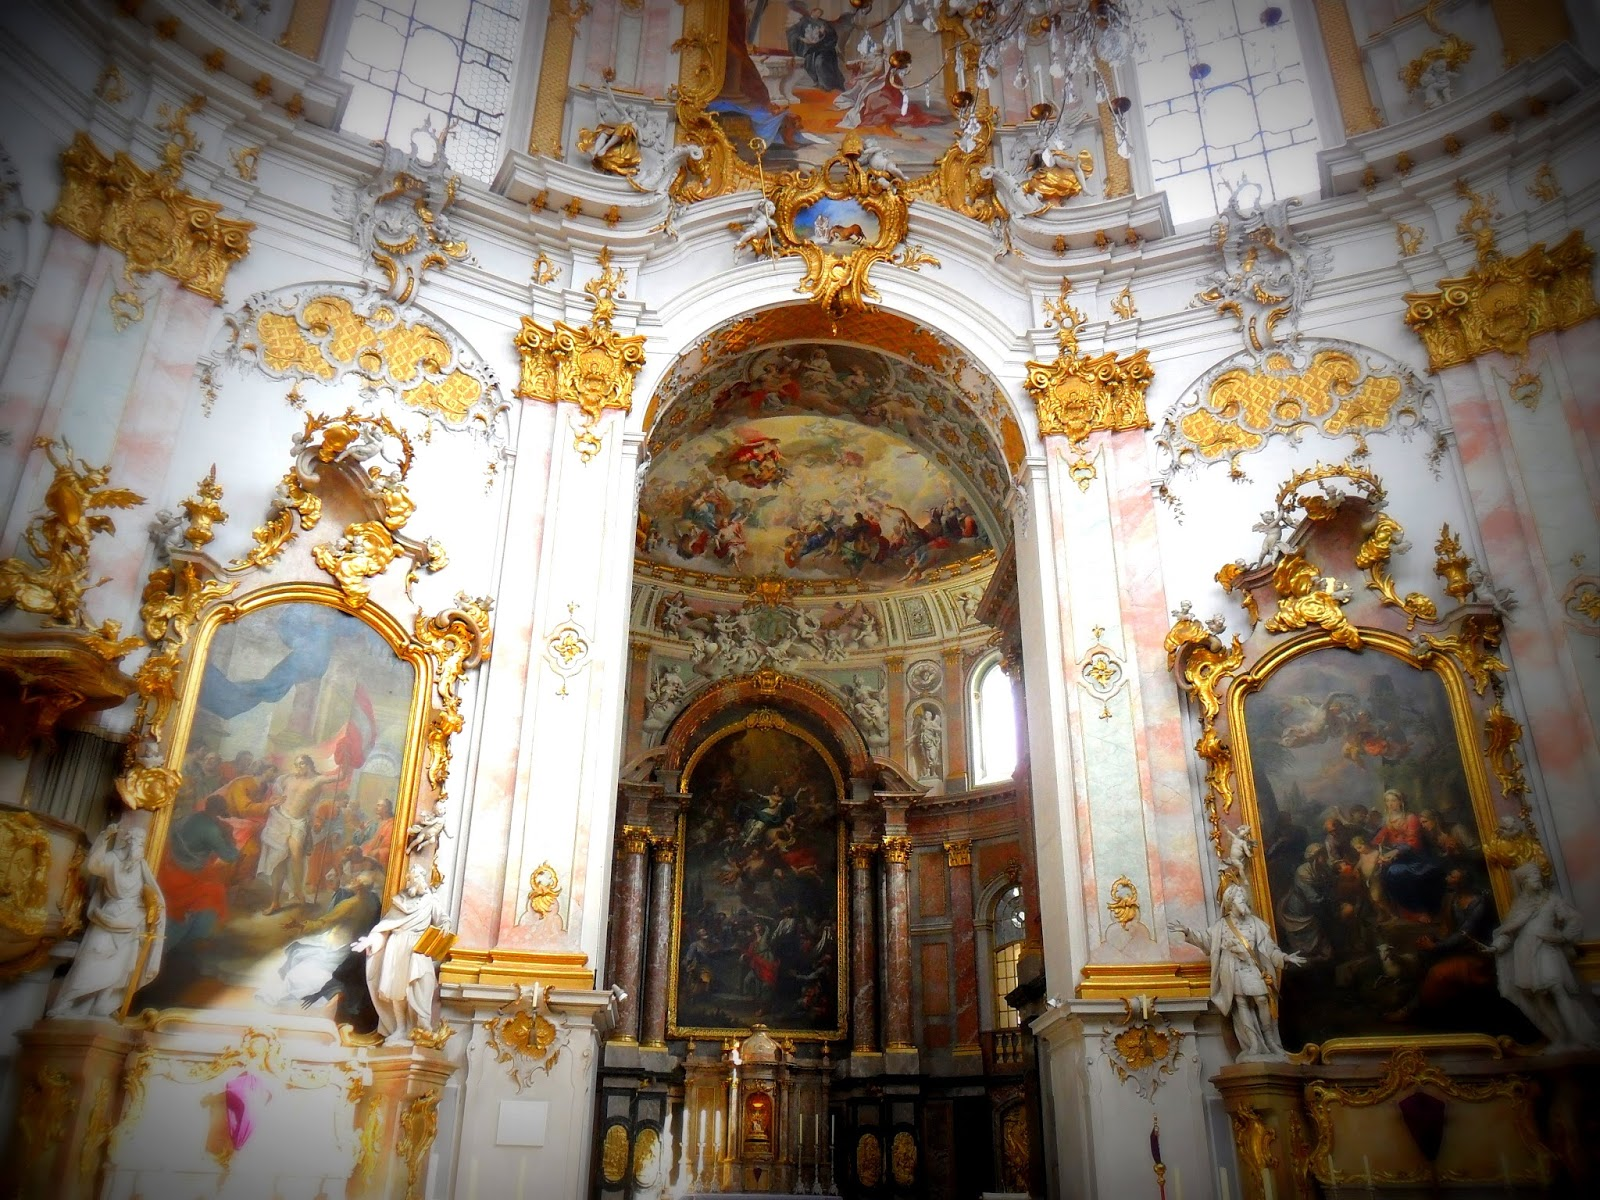 Baroque Architecture Interior Church The Baroque Interiors Of The